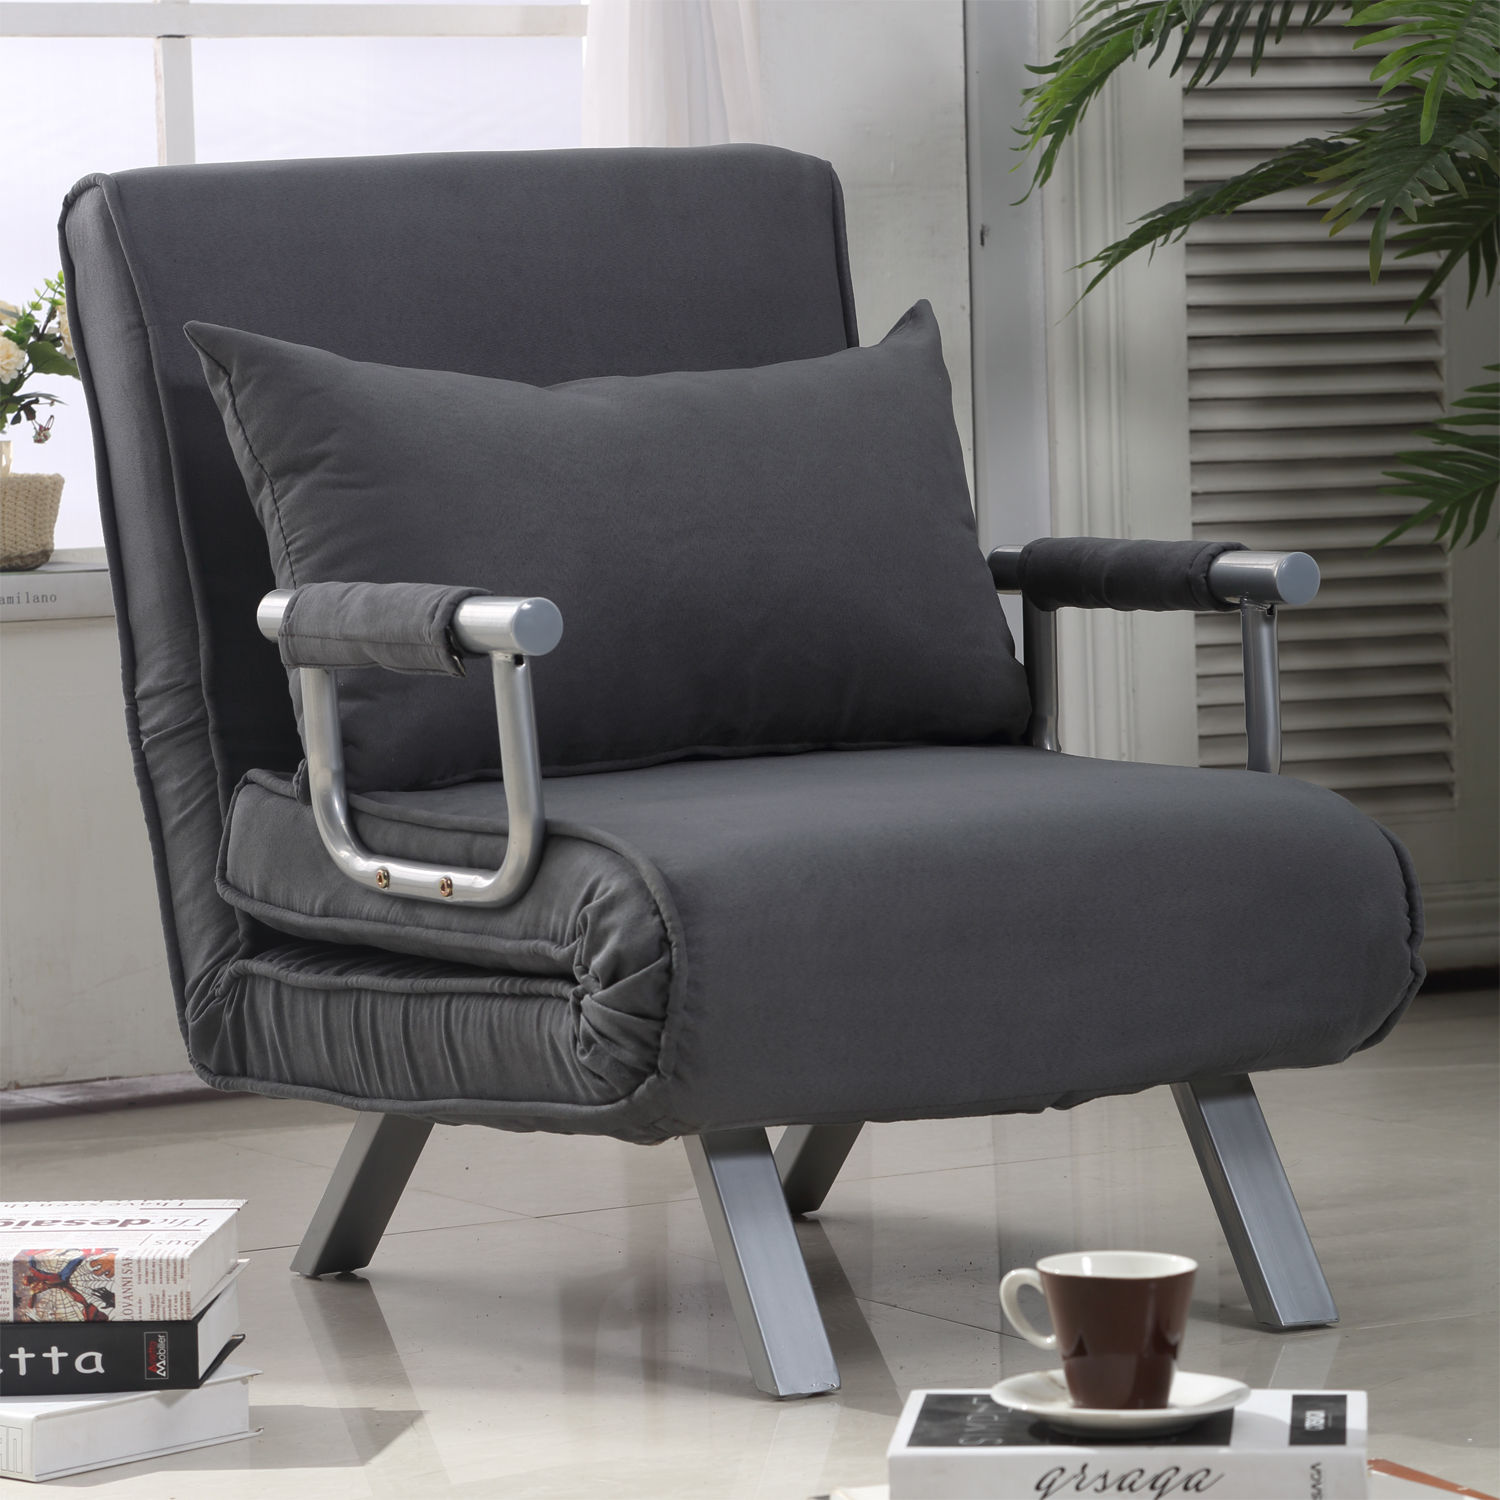 Details About Homcom Convertible Sleeper Armchair Foldable Sofa Bed Lounge Couch W Pillow